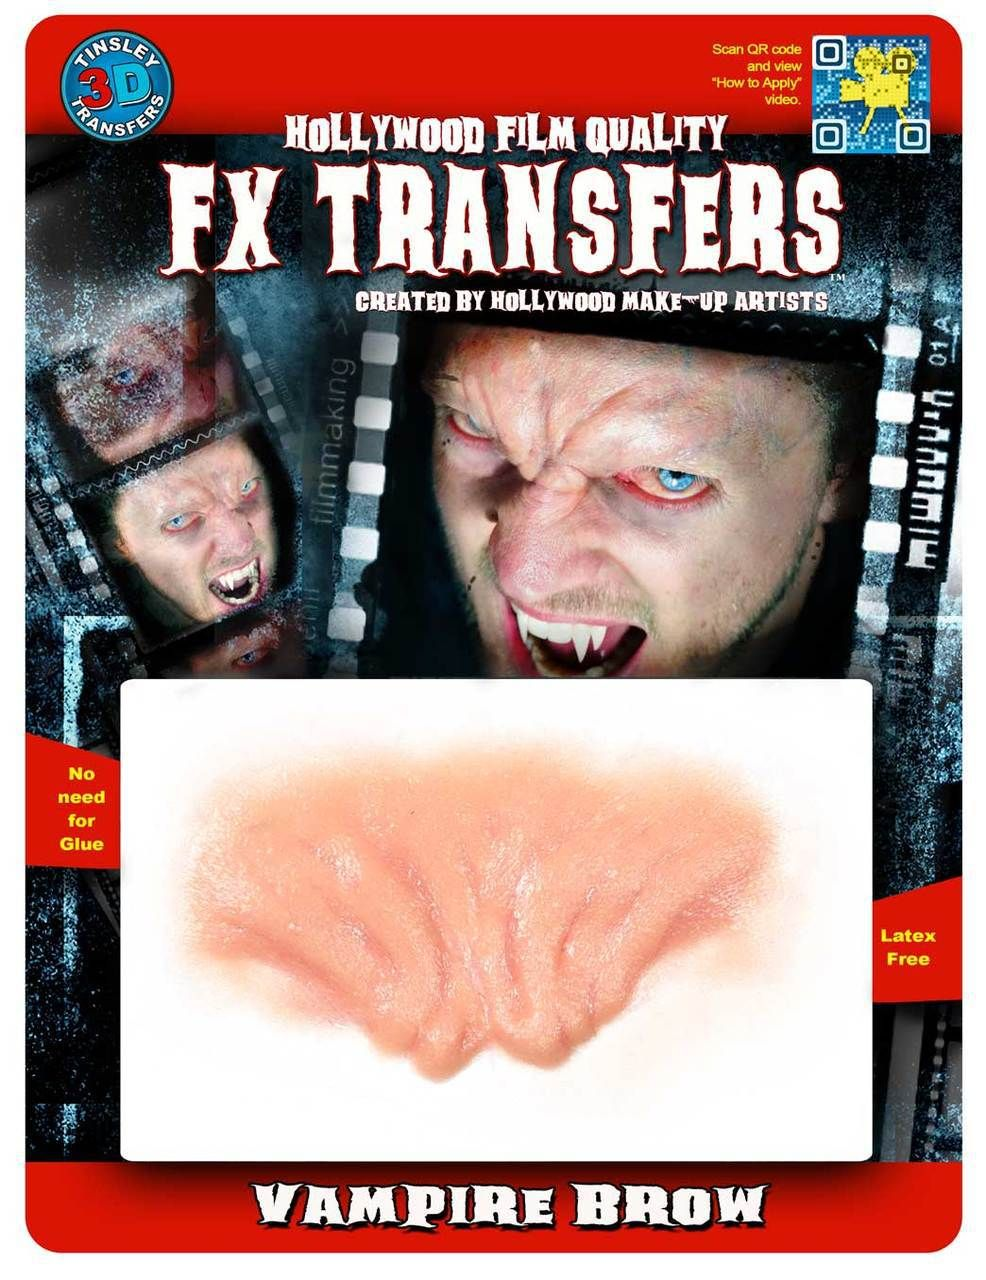 Tinsley Transfers Inc. - Vampire Brow - 3D FX Transfers, $13.99 (http://www.tinsleytransfers.com/vampire-brow-fx-transfers/) They have a lot of different awesome 3d fx transfers :D